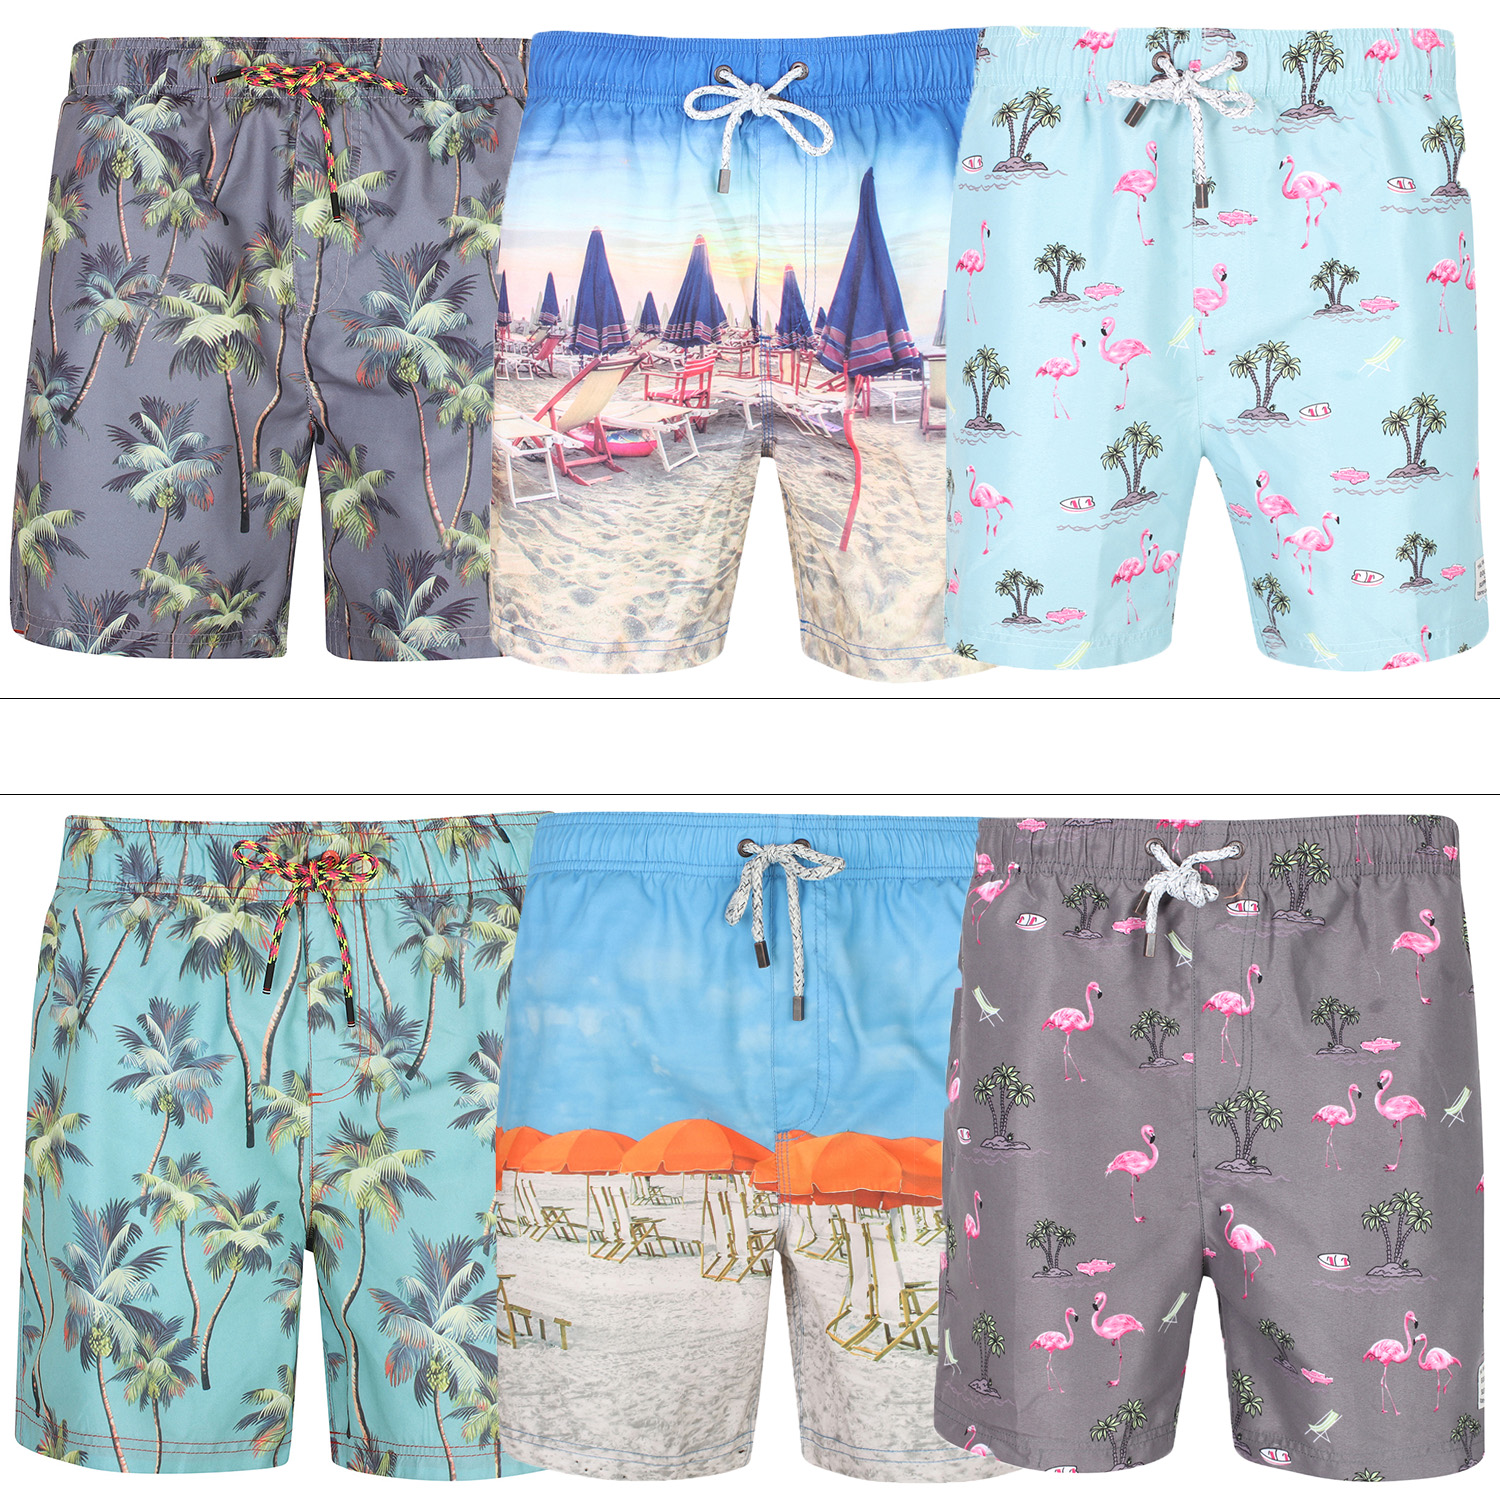 7a522124 Details about Tokyo Laundry Mens Hawaiian Patterned Swim Shorts Summer  Beach Board Surf Trunks